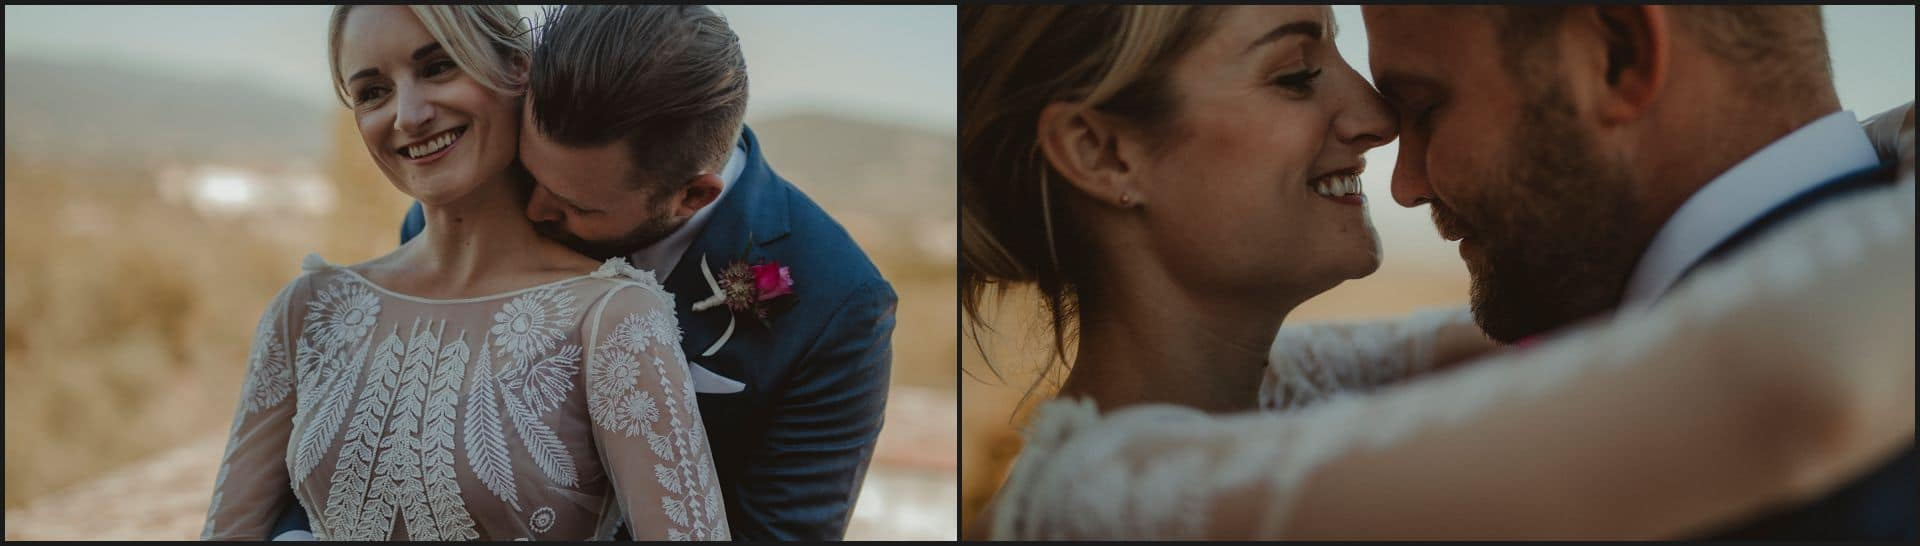 wedding, tuscany, villa medicea di lilliano, elopement wedding, romantic, intimate portrait